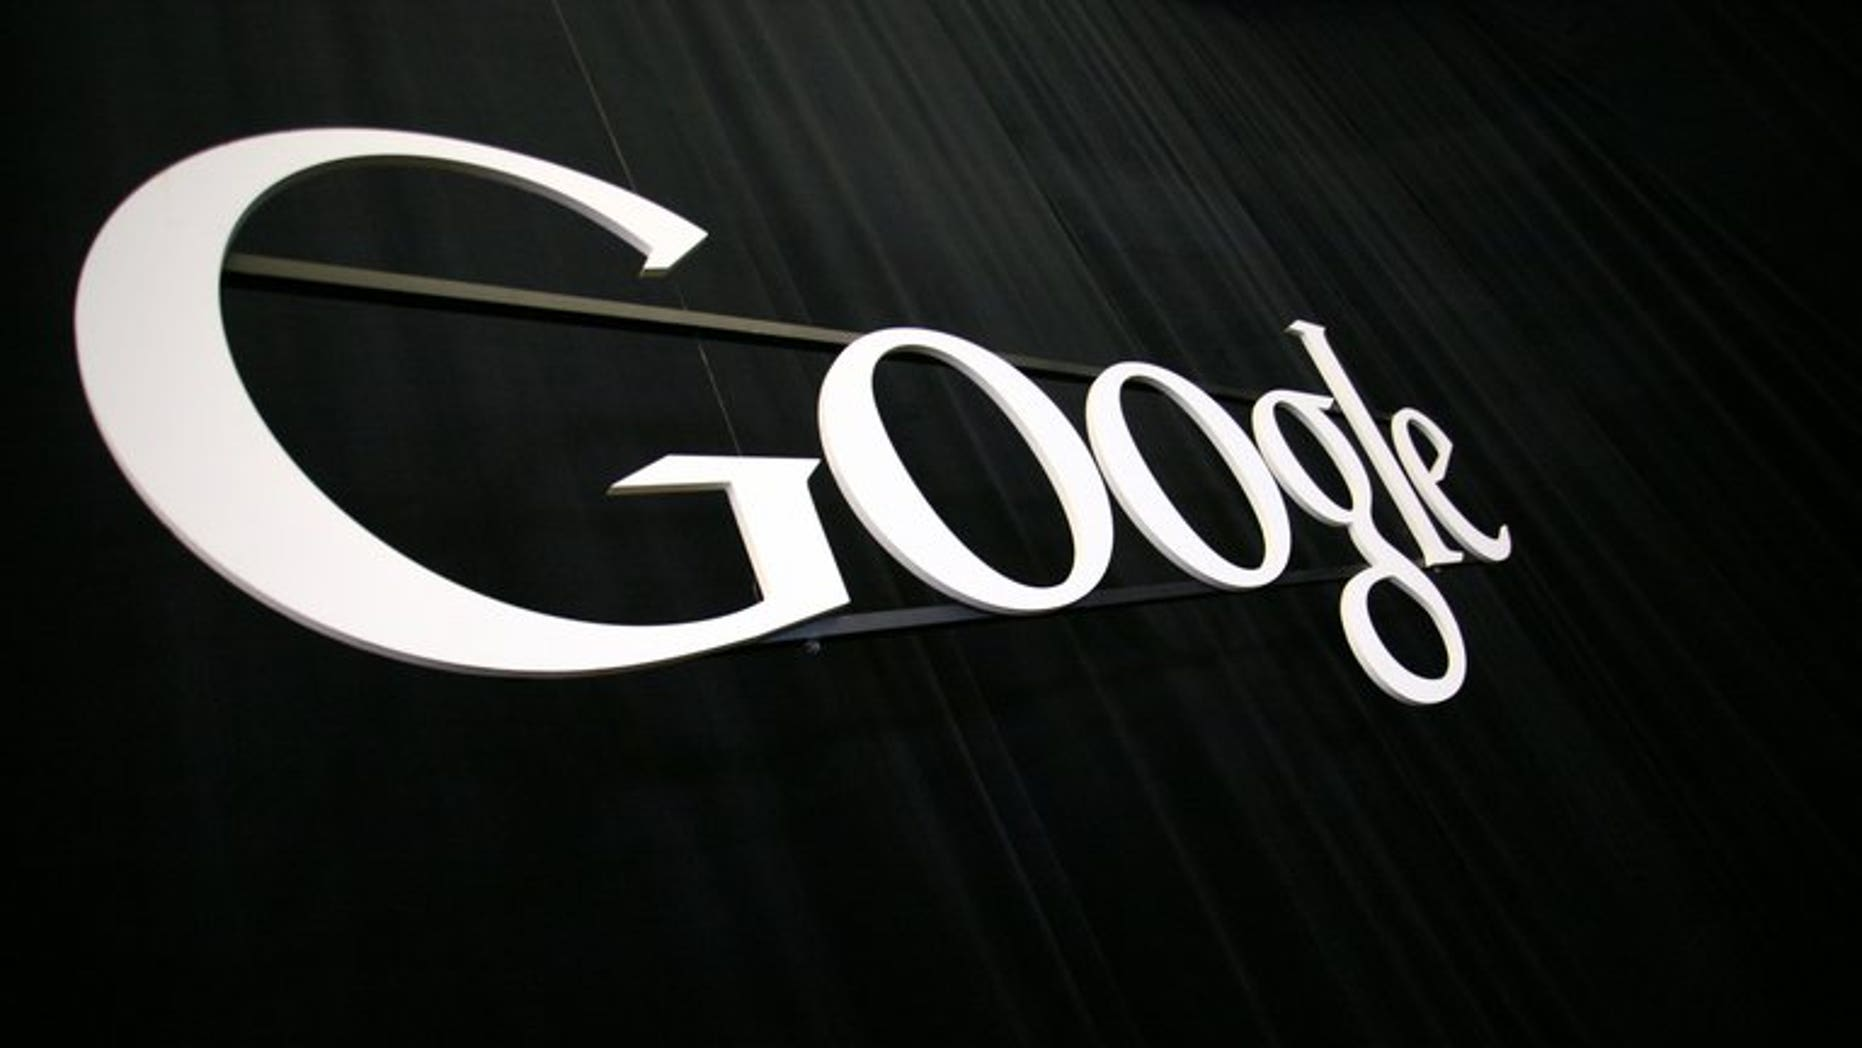 The CNIL said Google had failed to comply with data protection guidelines within a three-month deadline and said it would begin a formal sanction procedure, under which the US company could be fined up to 150,000 euros ($205,000).